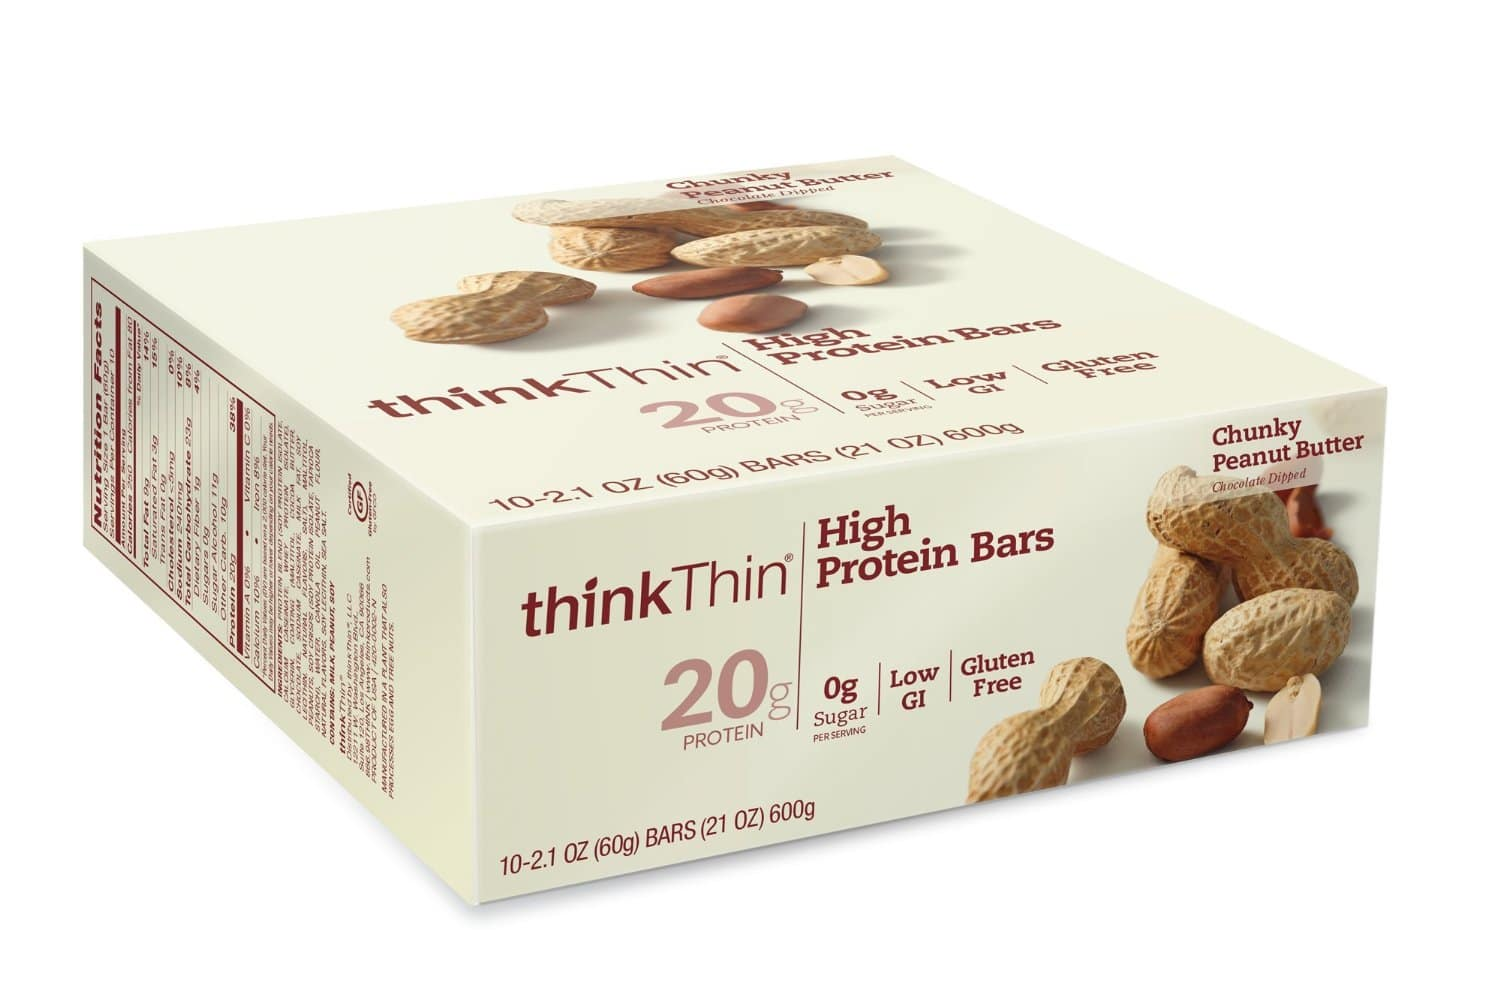 Add-On: 10-Pack 2.1oz. ThinkThin High Protein Bars (Peanut Butter)  $3 + Free Shipping Orders $25+